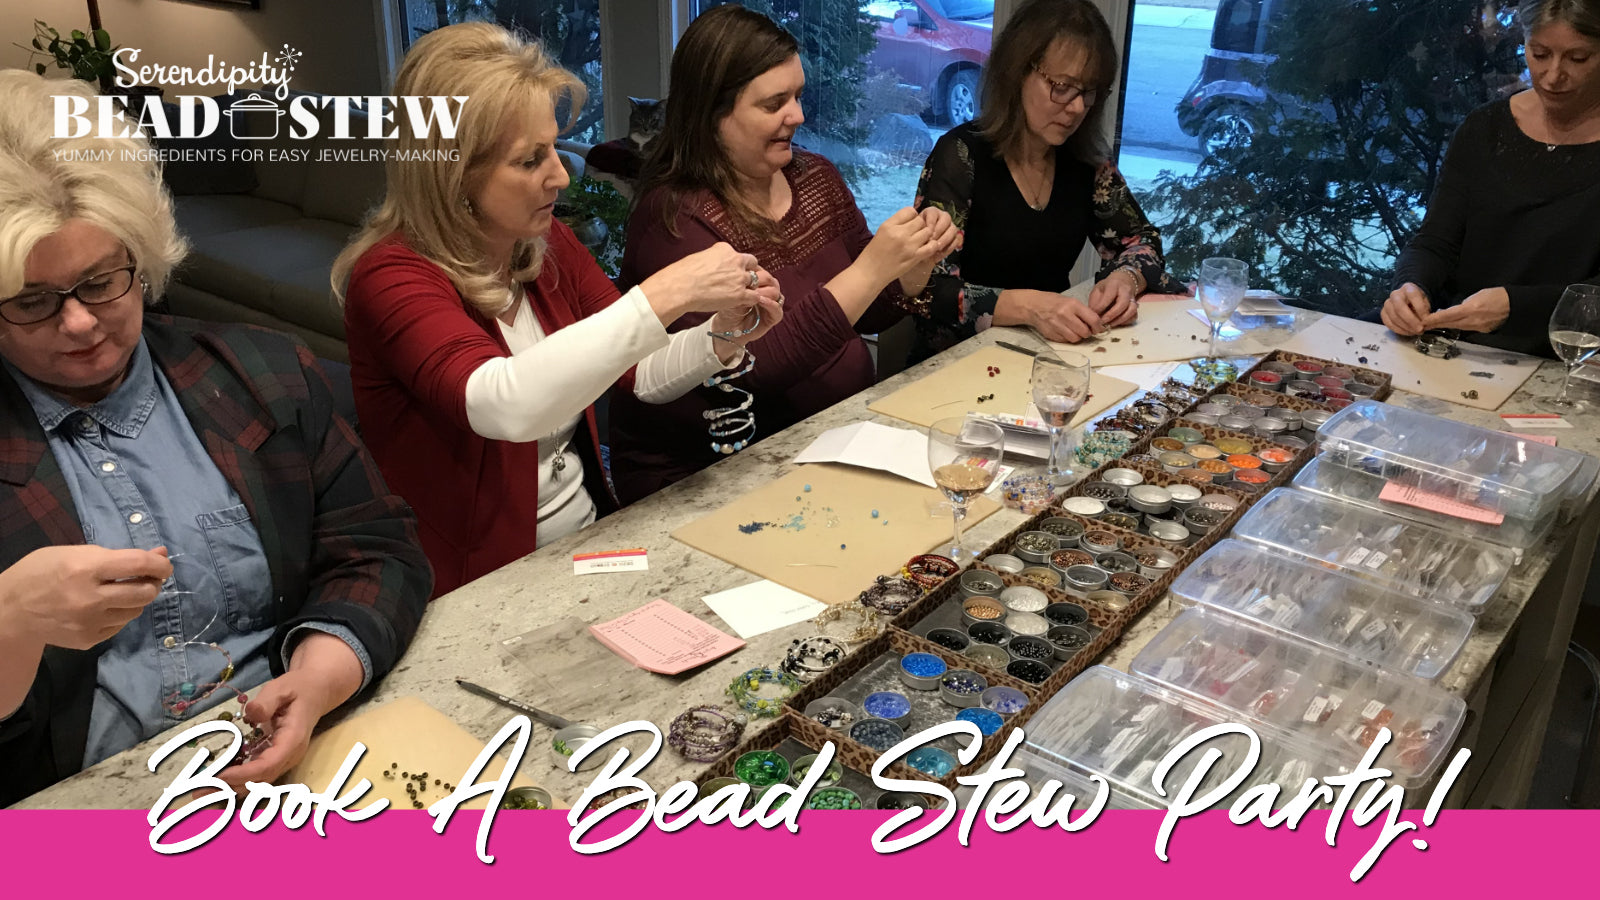 Suzie Q Studio's BEAD STEW Jewelry-Making Parties make the perfect get-together for any occasion!.. Birthday and Retirement Parties, Bachelorette Parties, Bridal Showers and more. Book your party soon at suzieqstudio.com. Being Creative Feels Good.